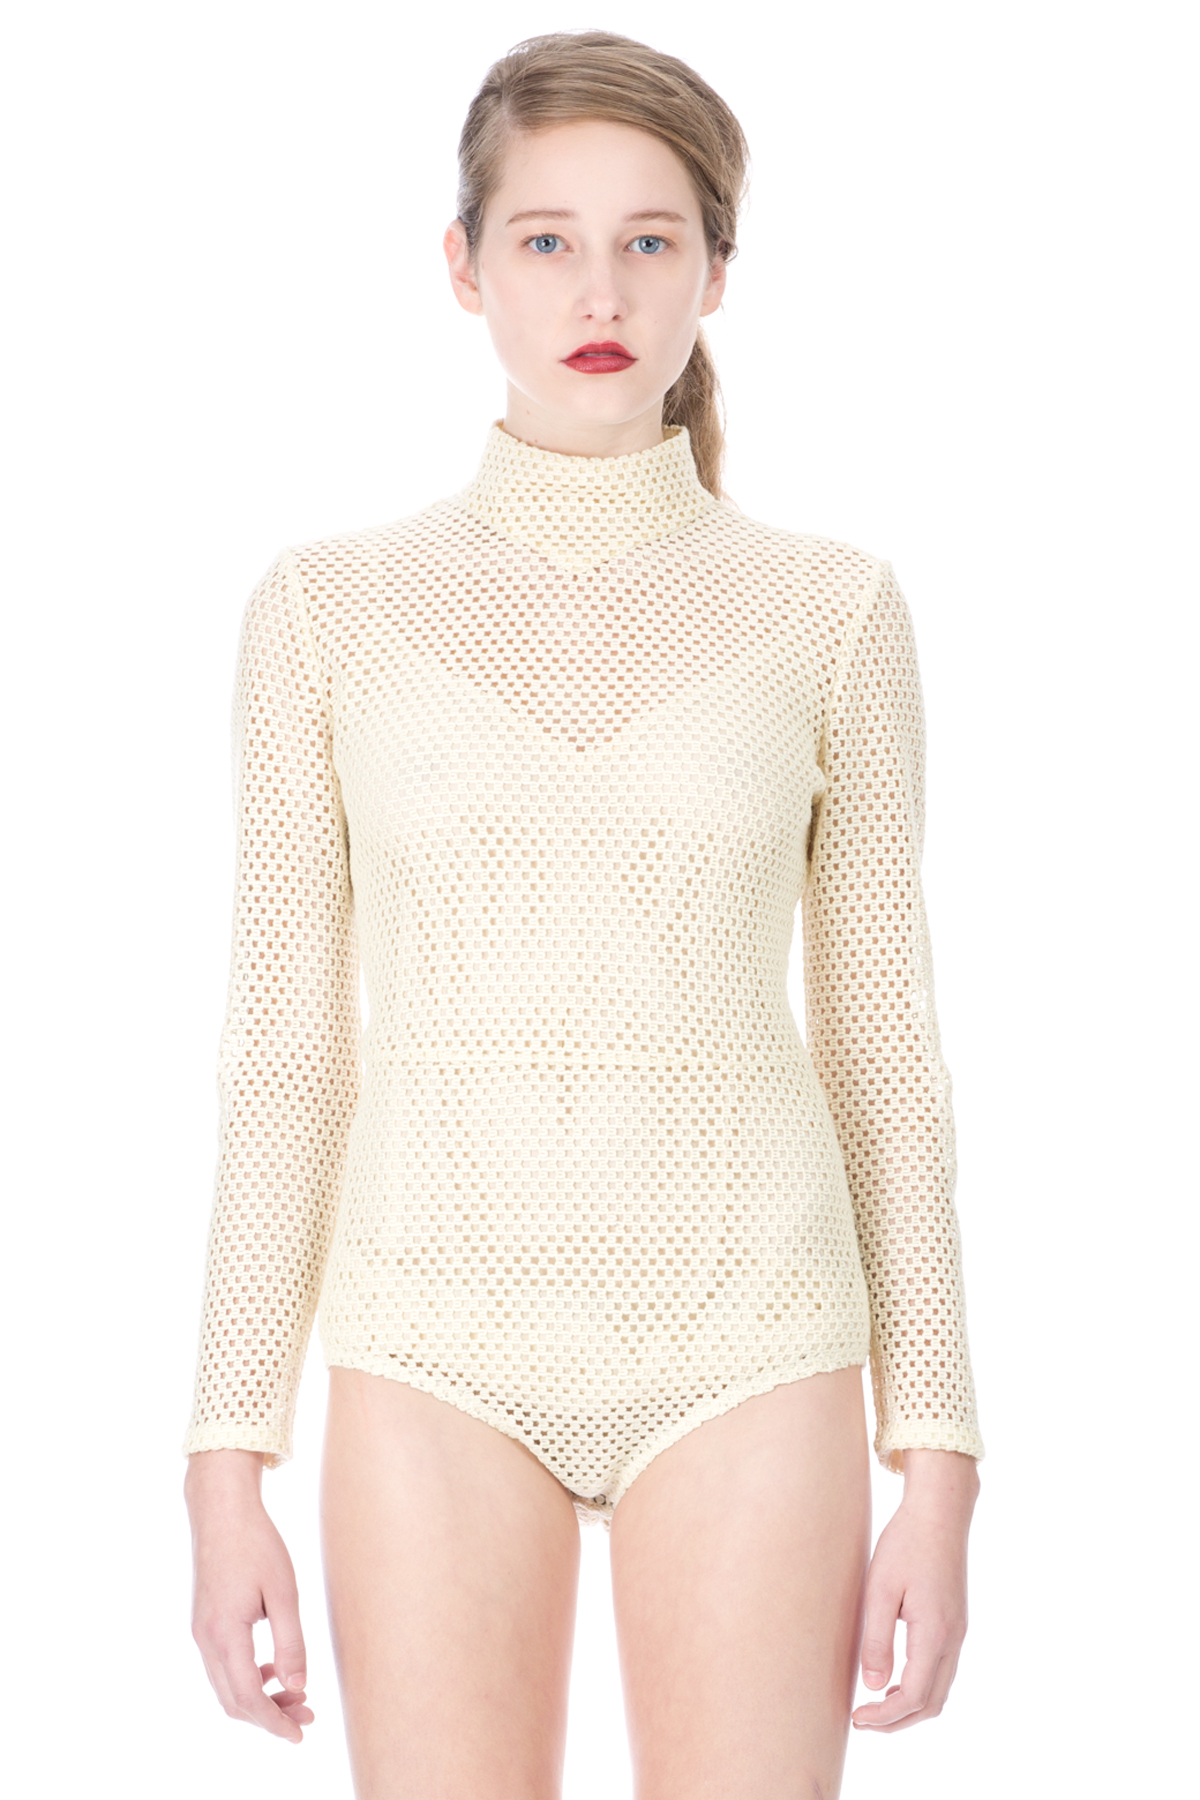 bodysuits for women veronique leroy mesh high neck long-sleeve bodysuit - women - just in -  jumpers YPRWFQL